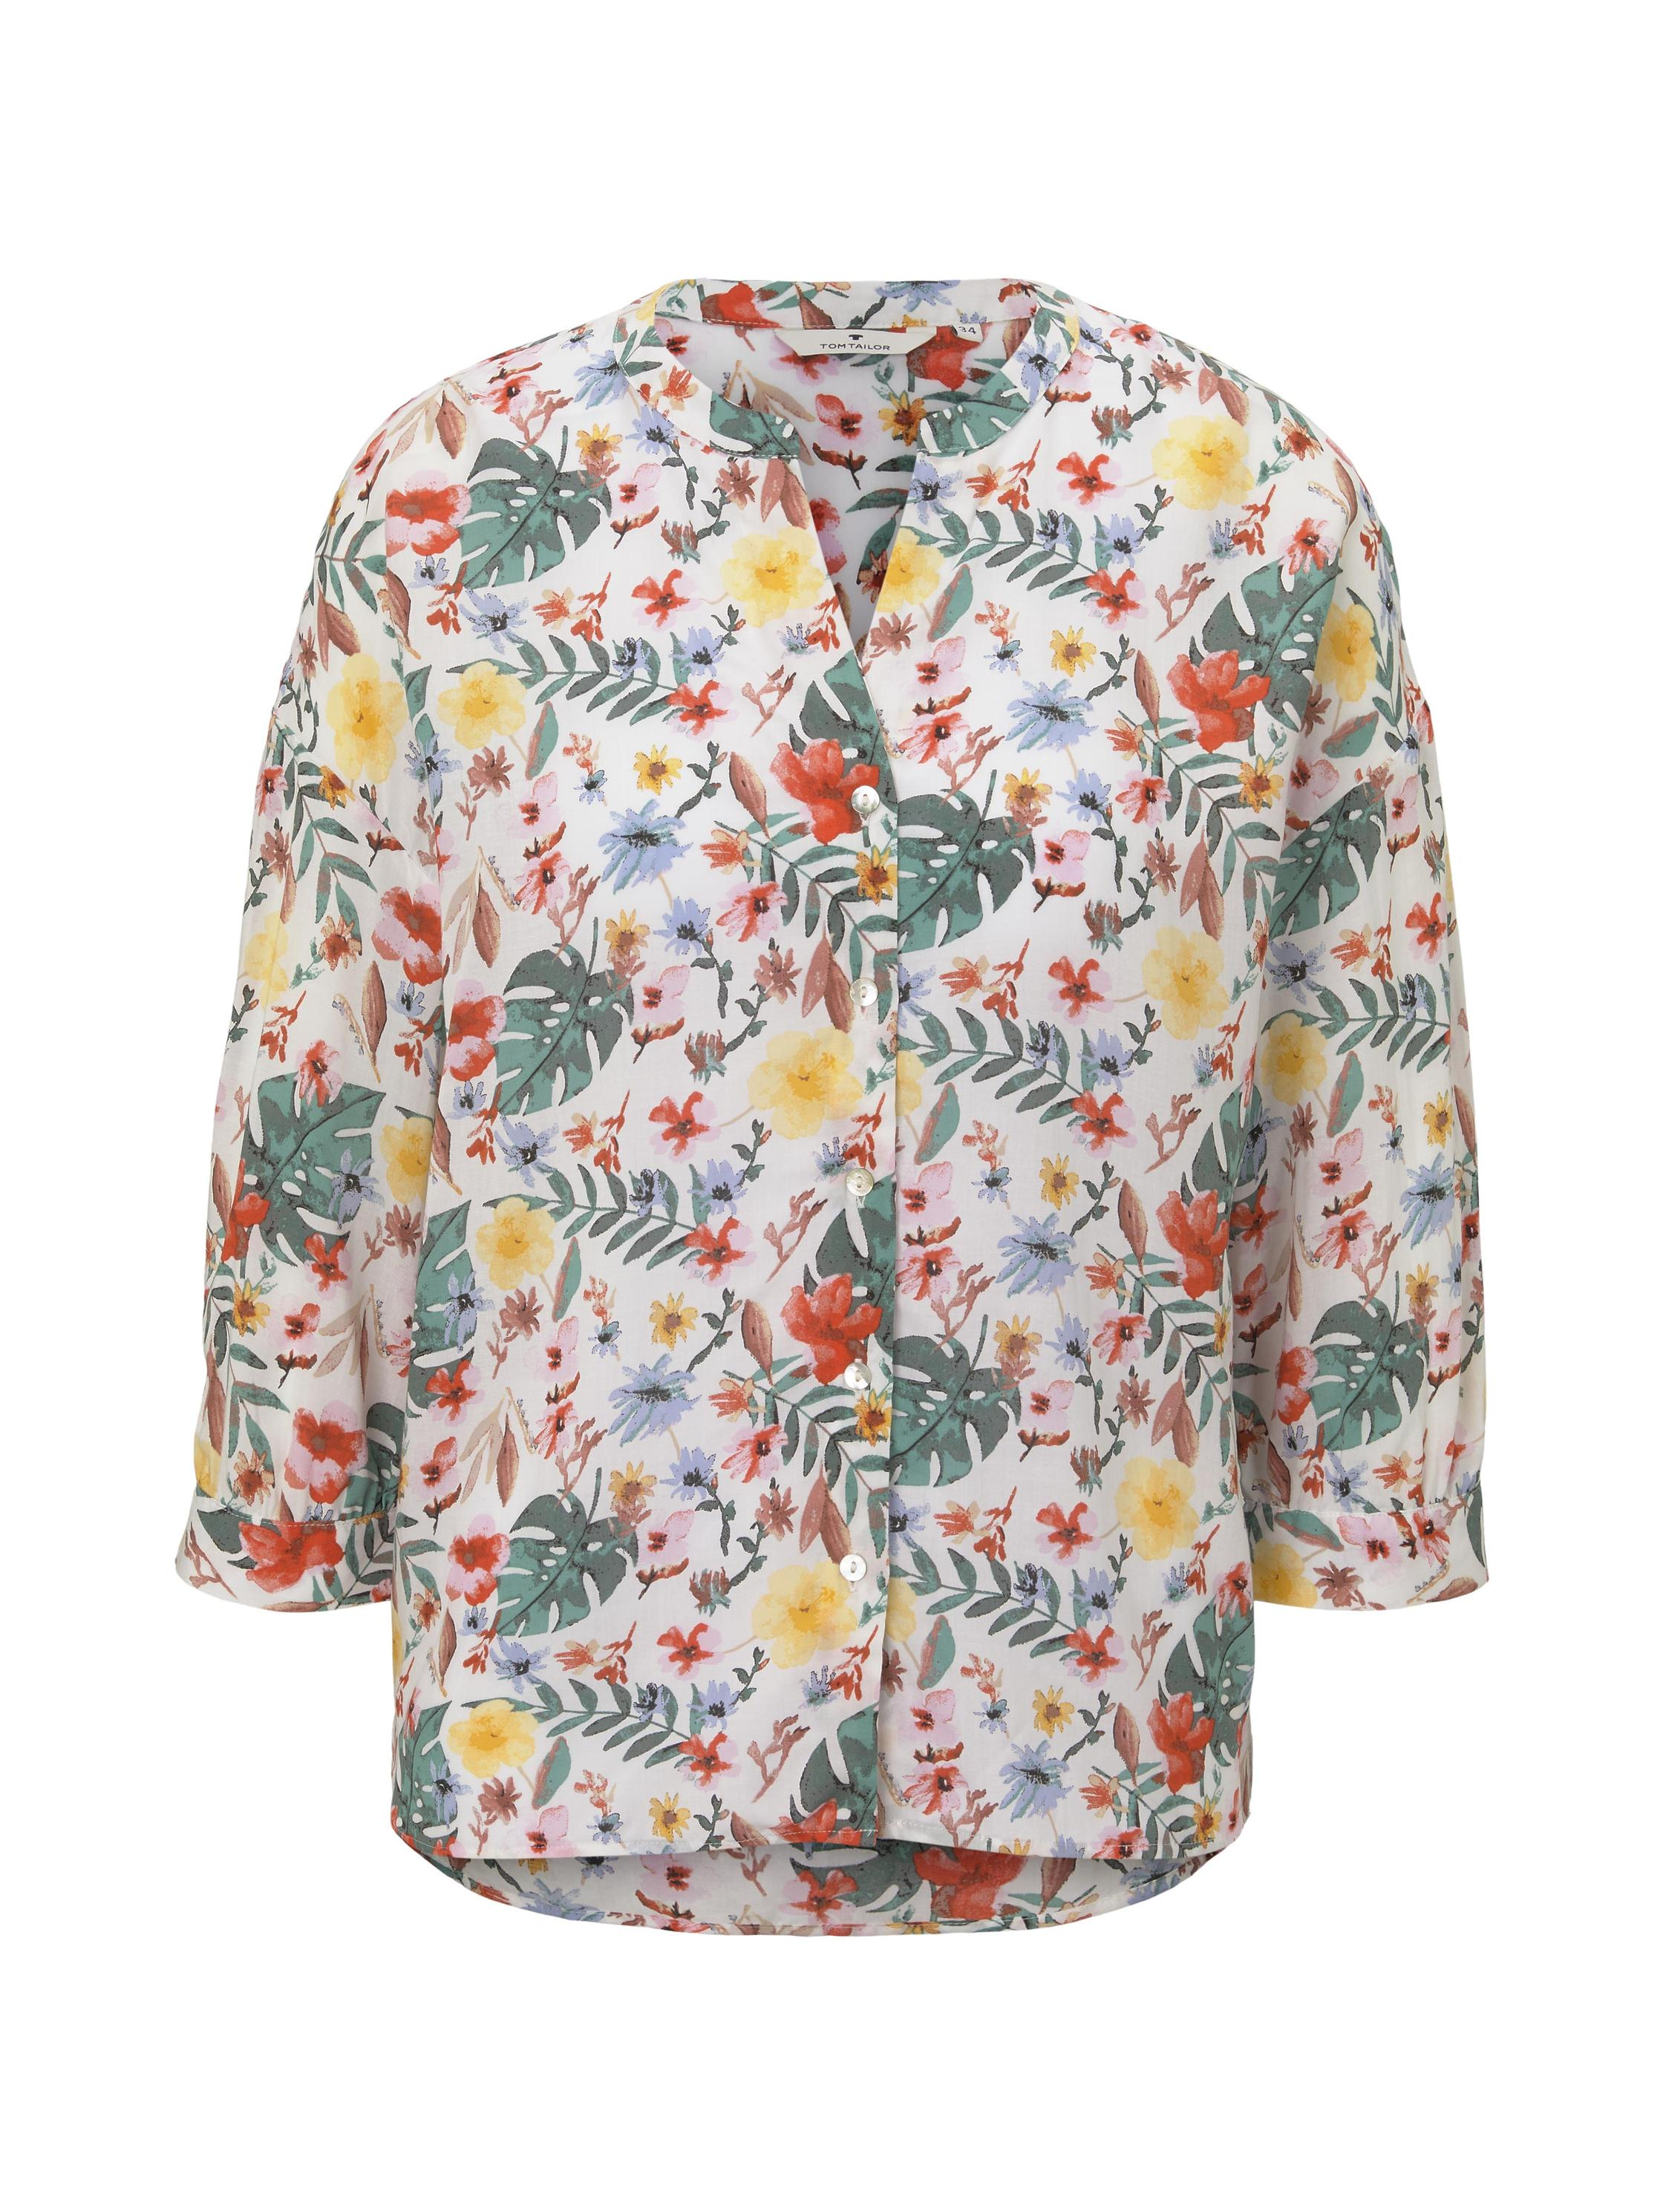 blouse printed loose shape, white watercolor flower design